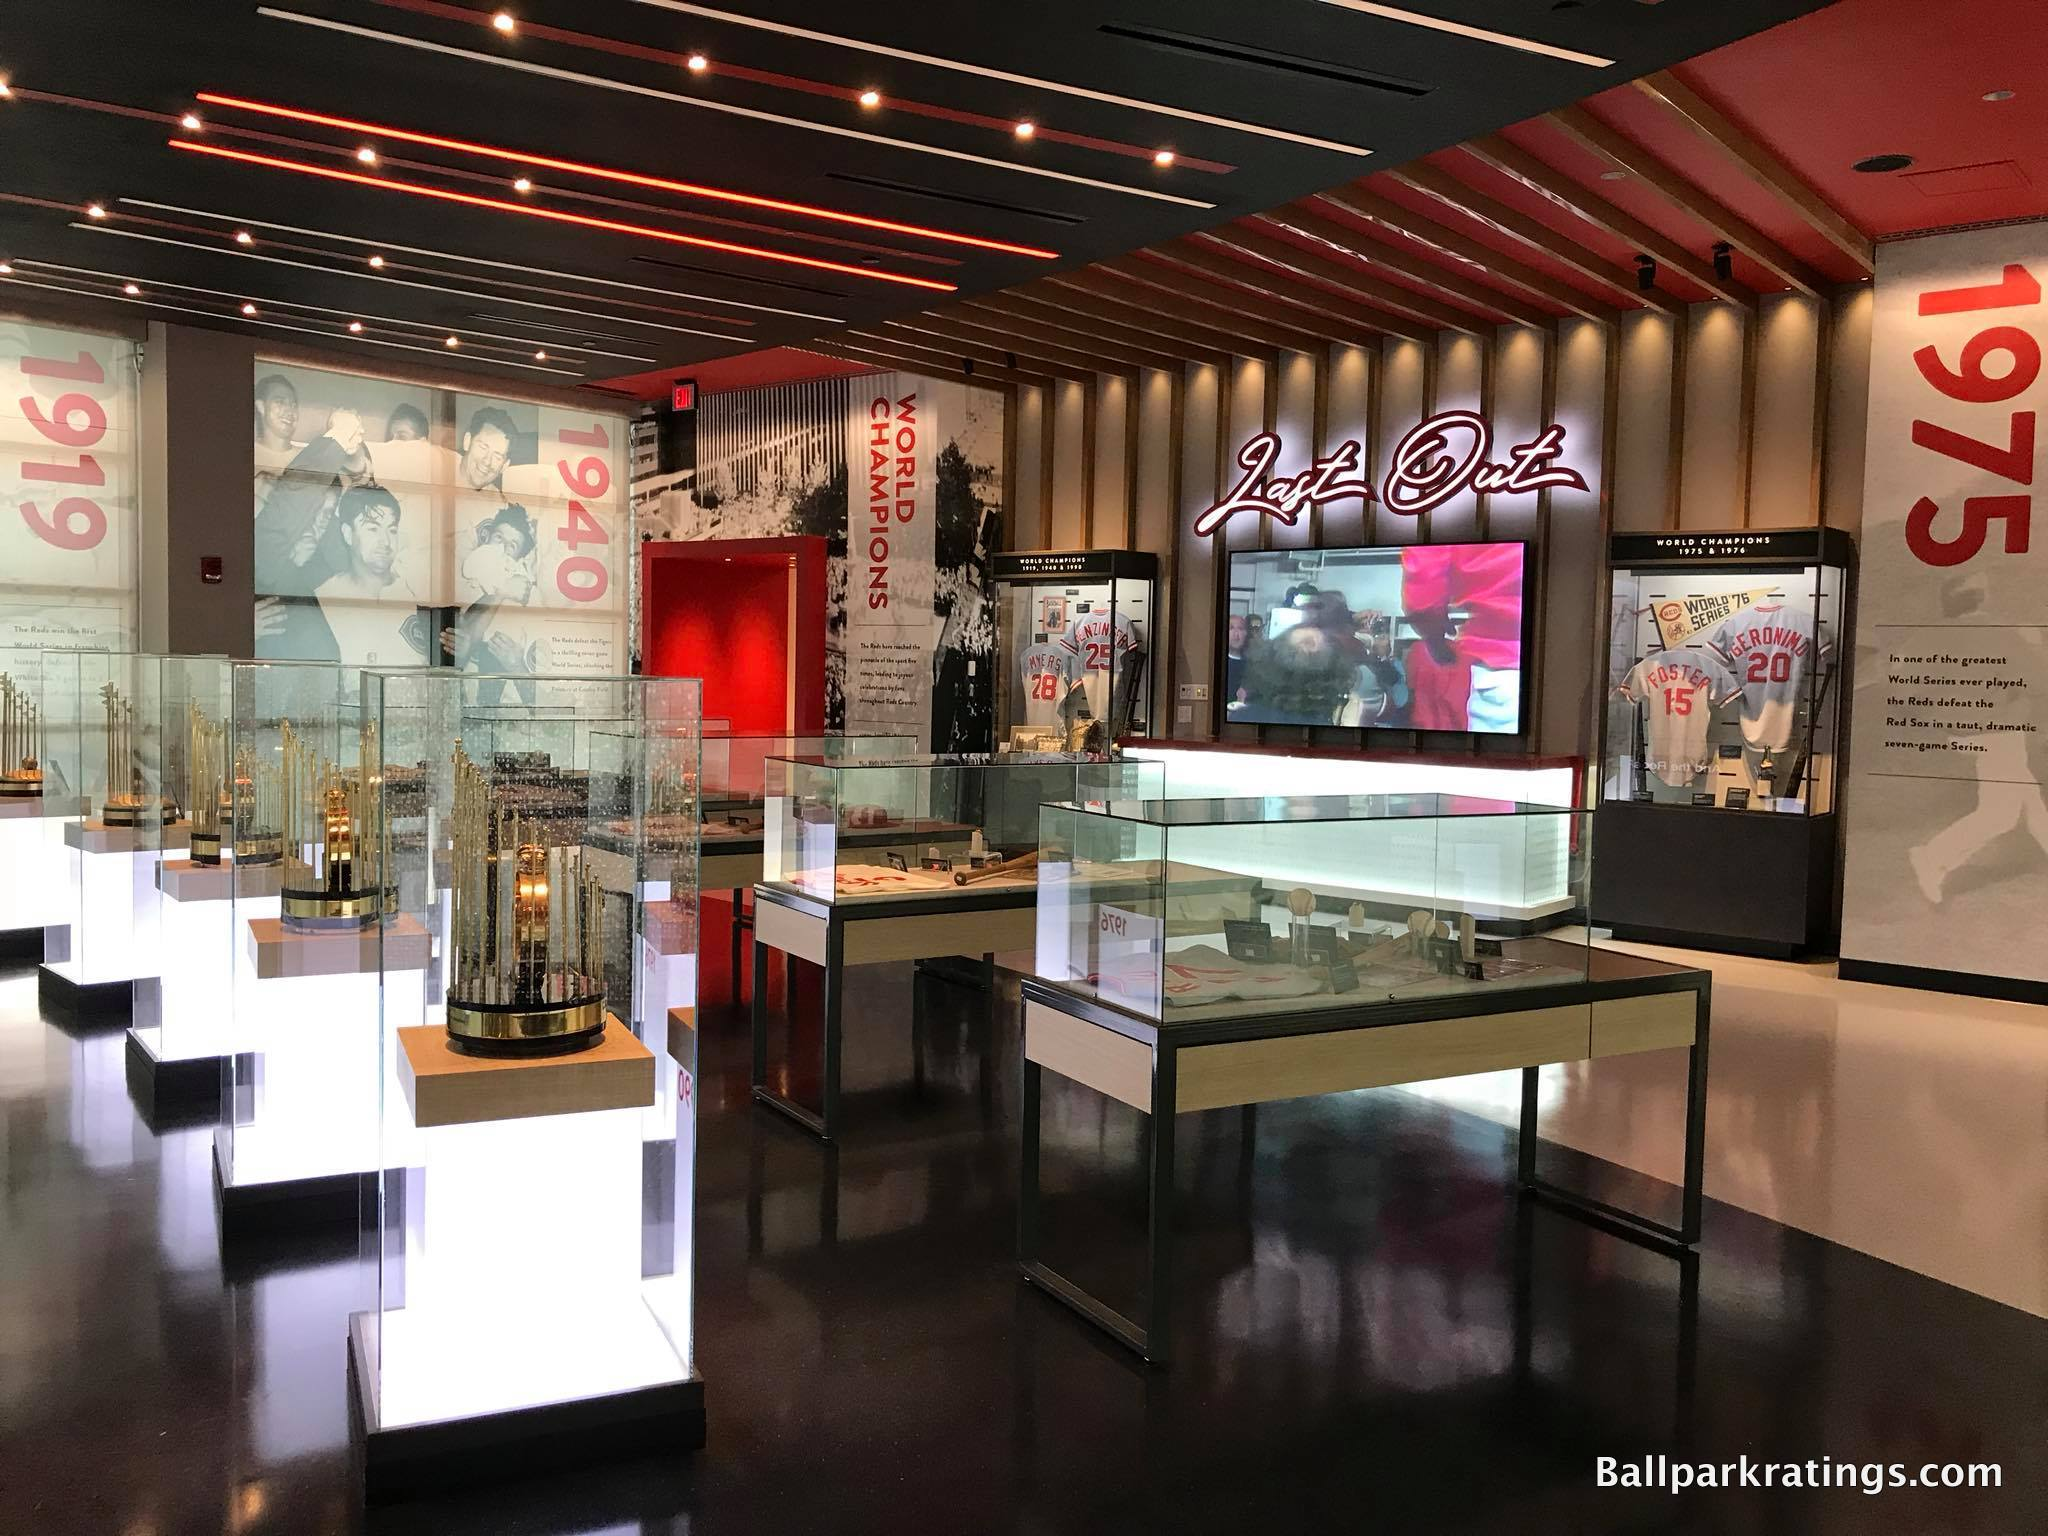 Great American Ballpark Hall of Fame and Museum